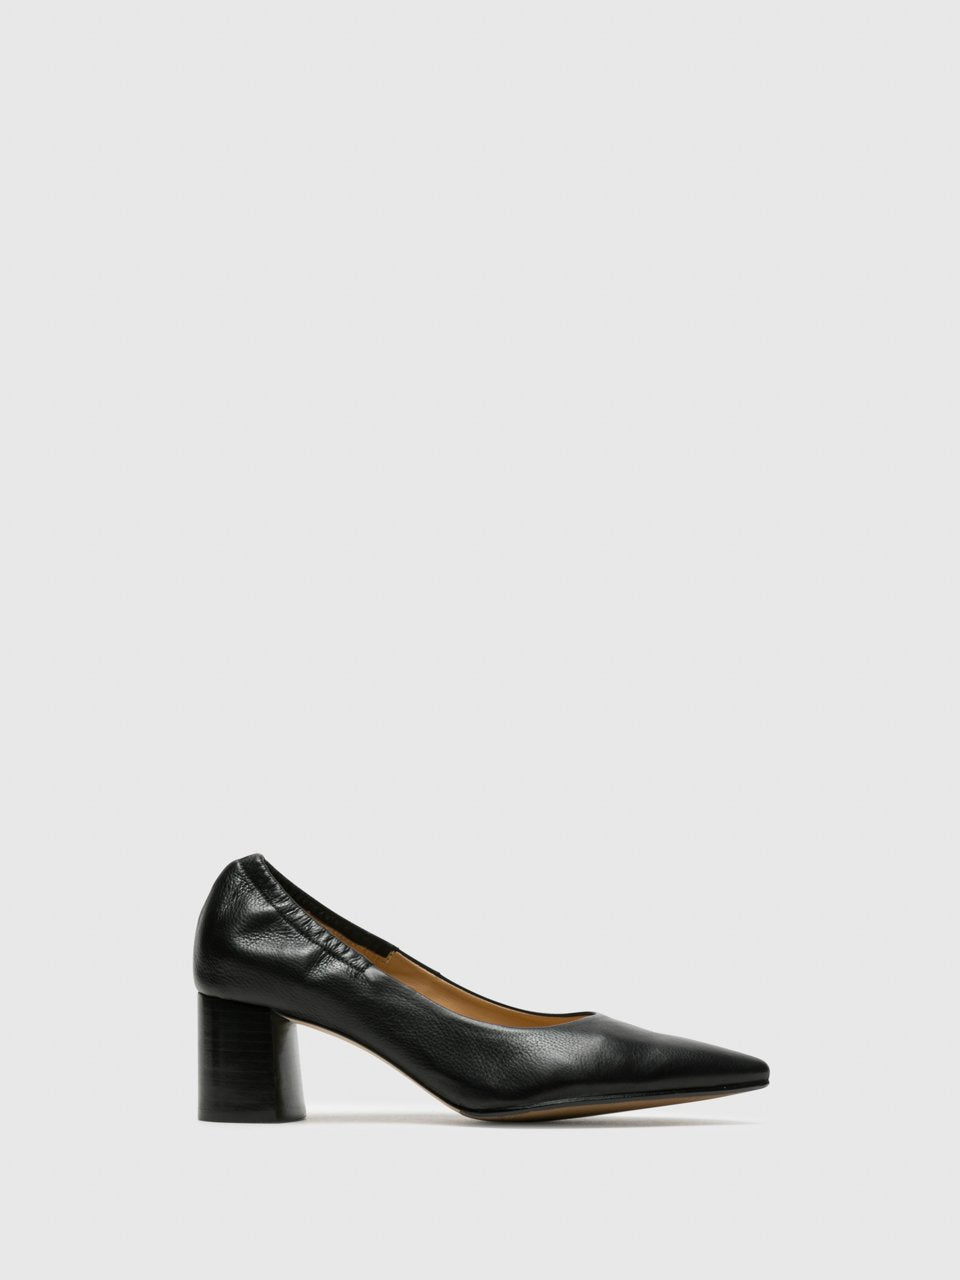 Perlato Black Round Toe Pumps Shoes